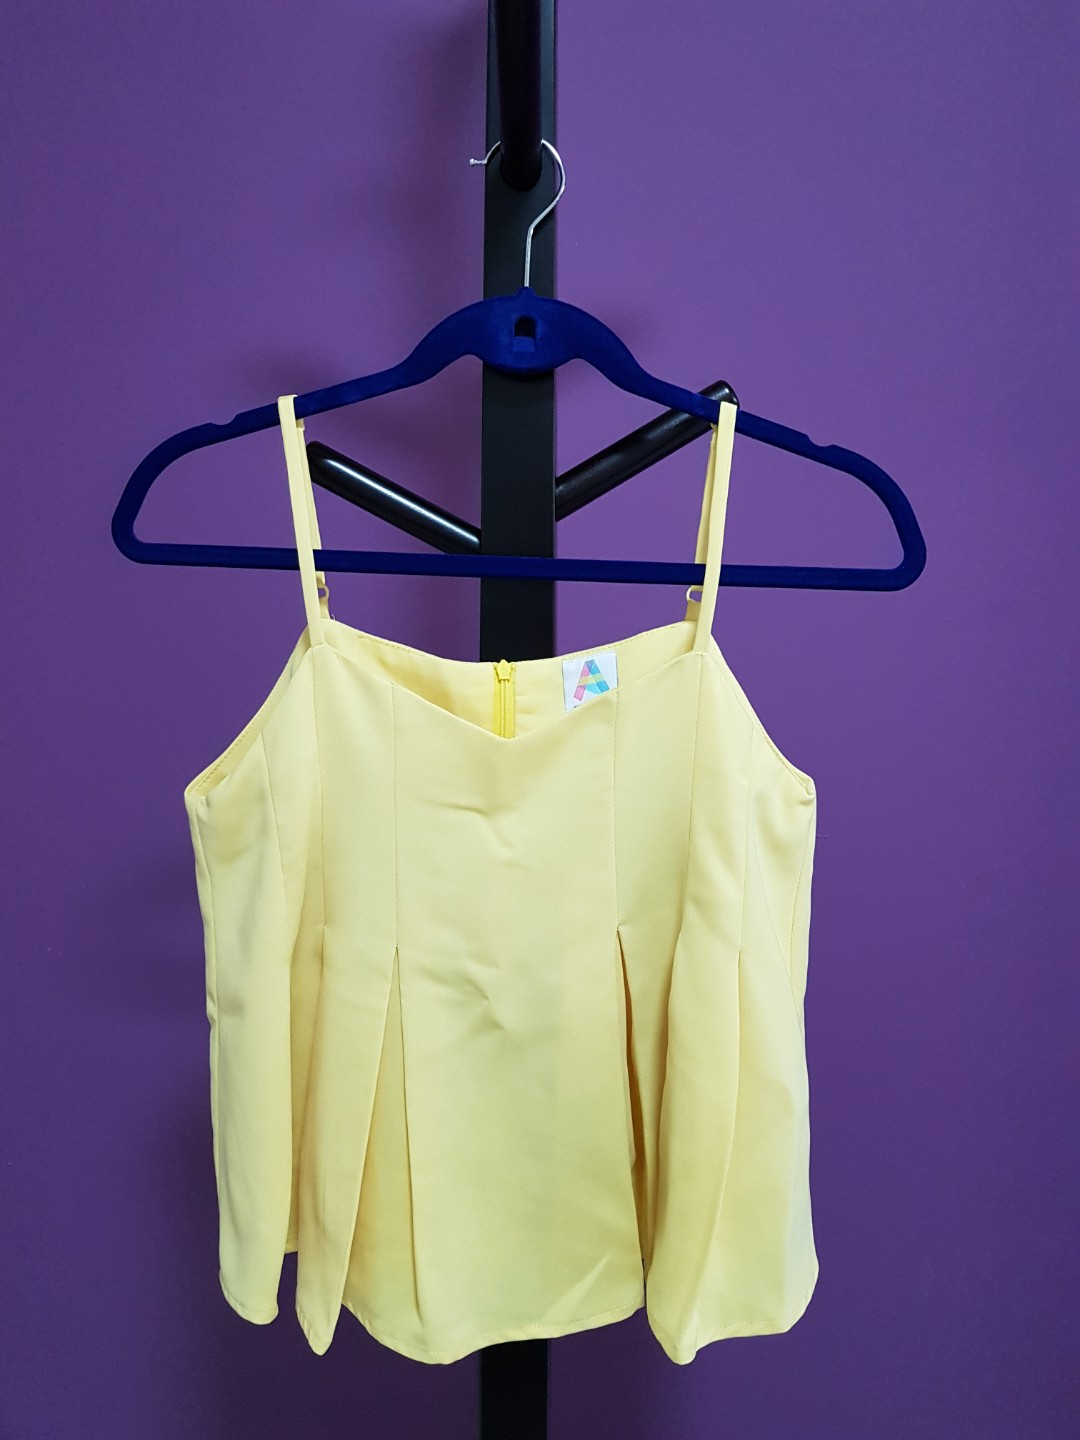 70cae0bf A for Arcade Top in Yellow, Women's Fashion, Clothes, Tops on Carousell